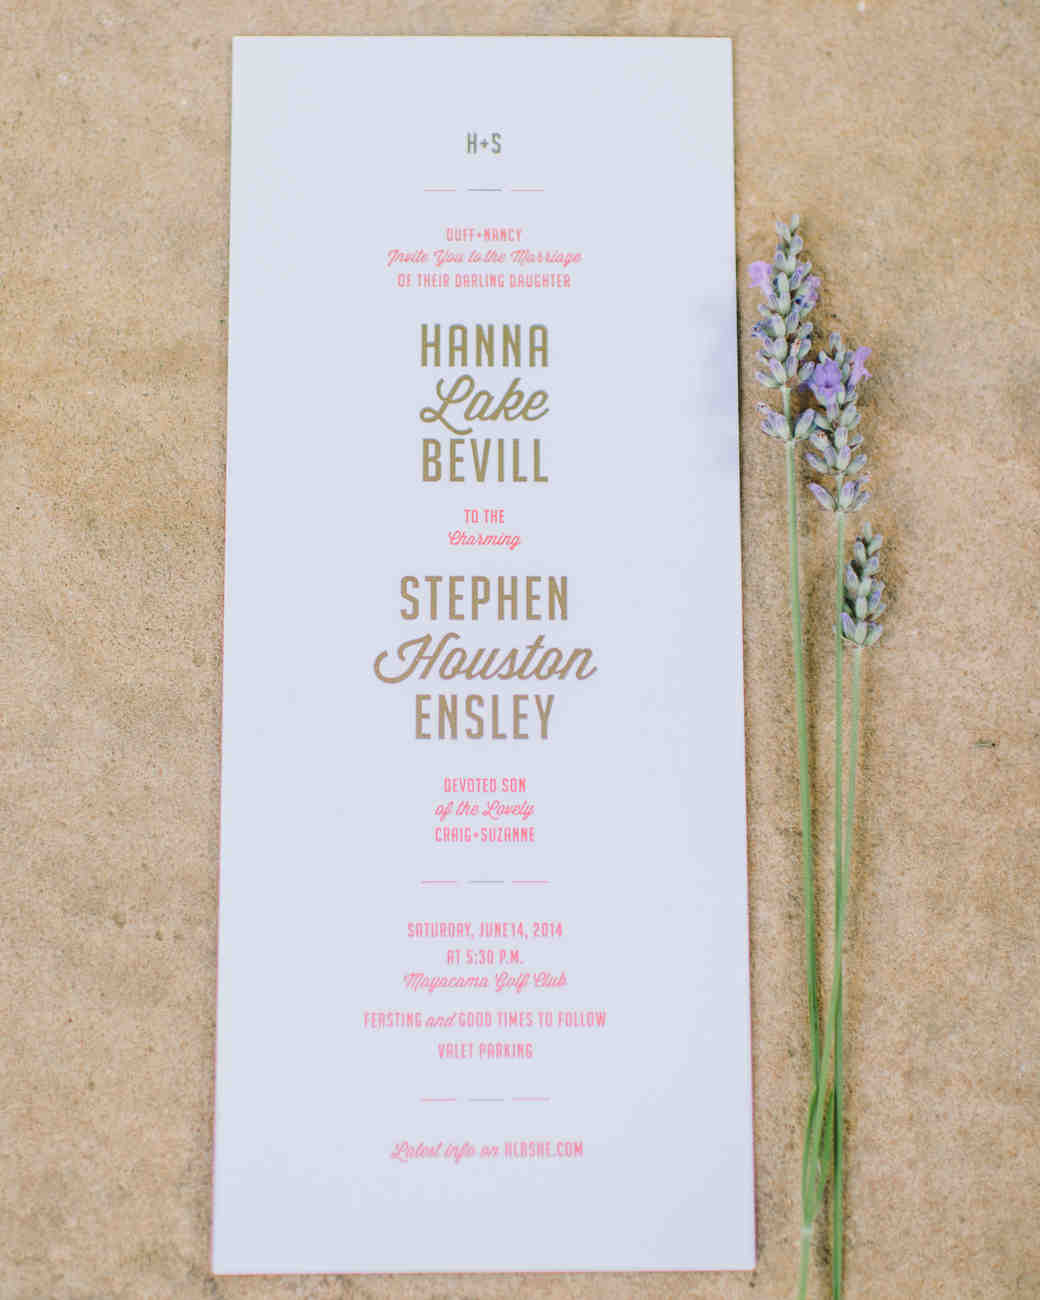 hanna-stephen-wedding-invite-1483-s111737-0115.jpg